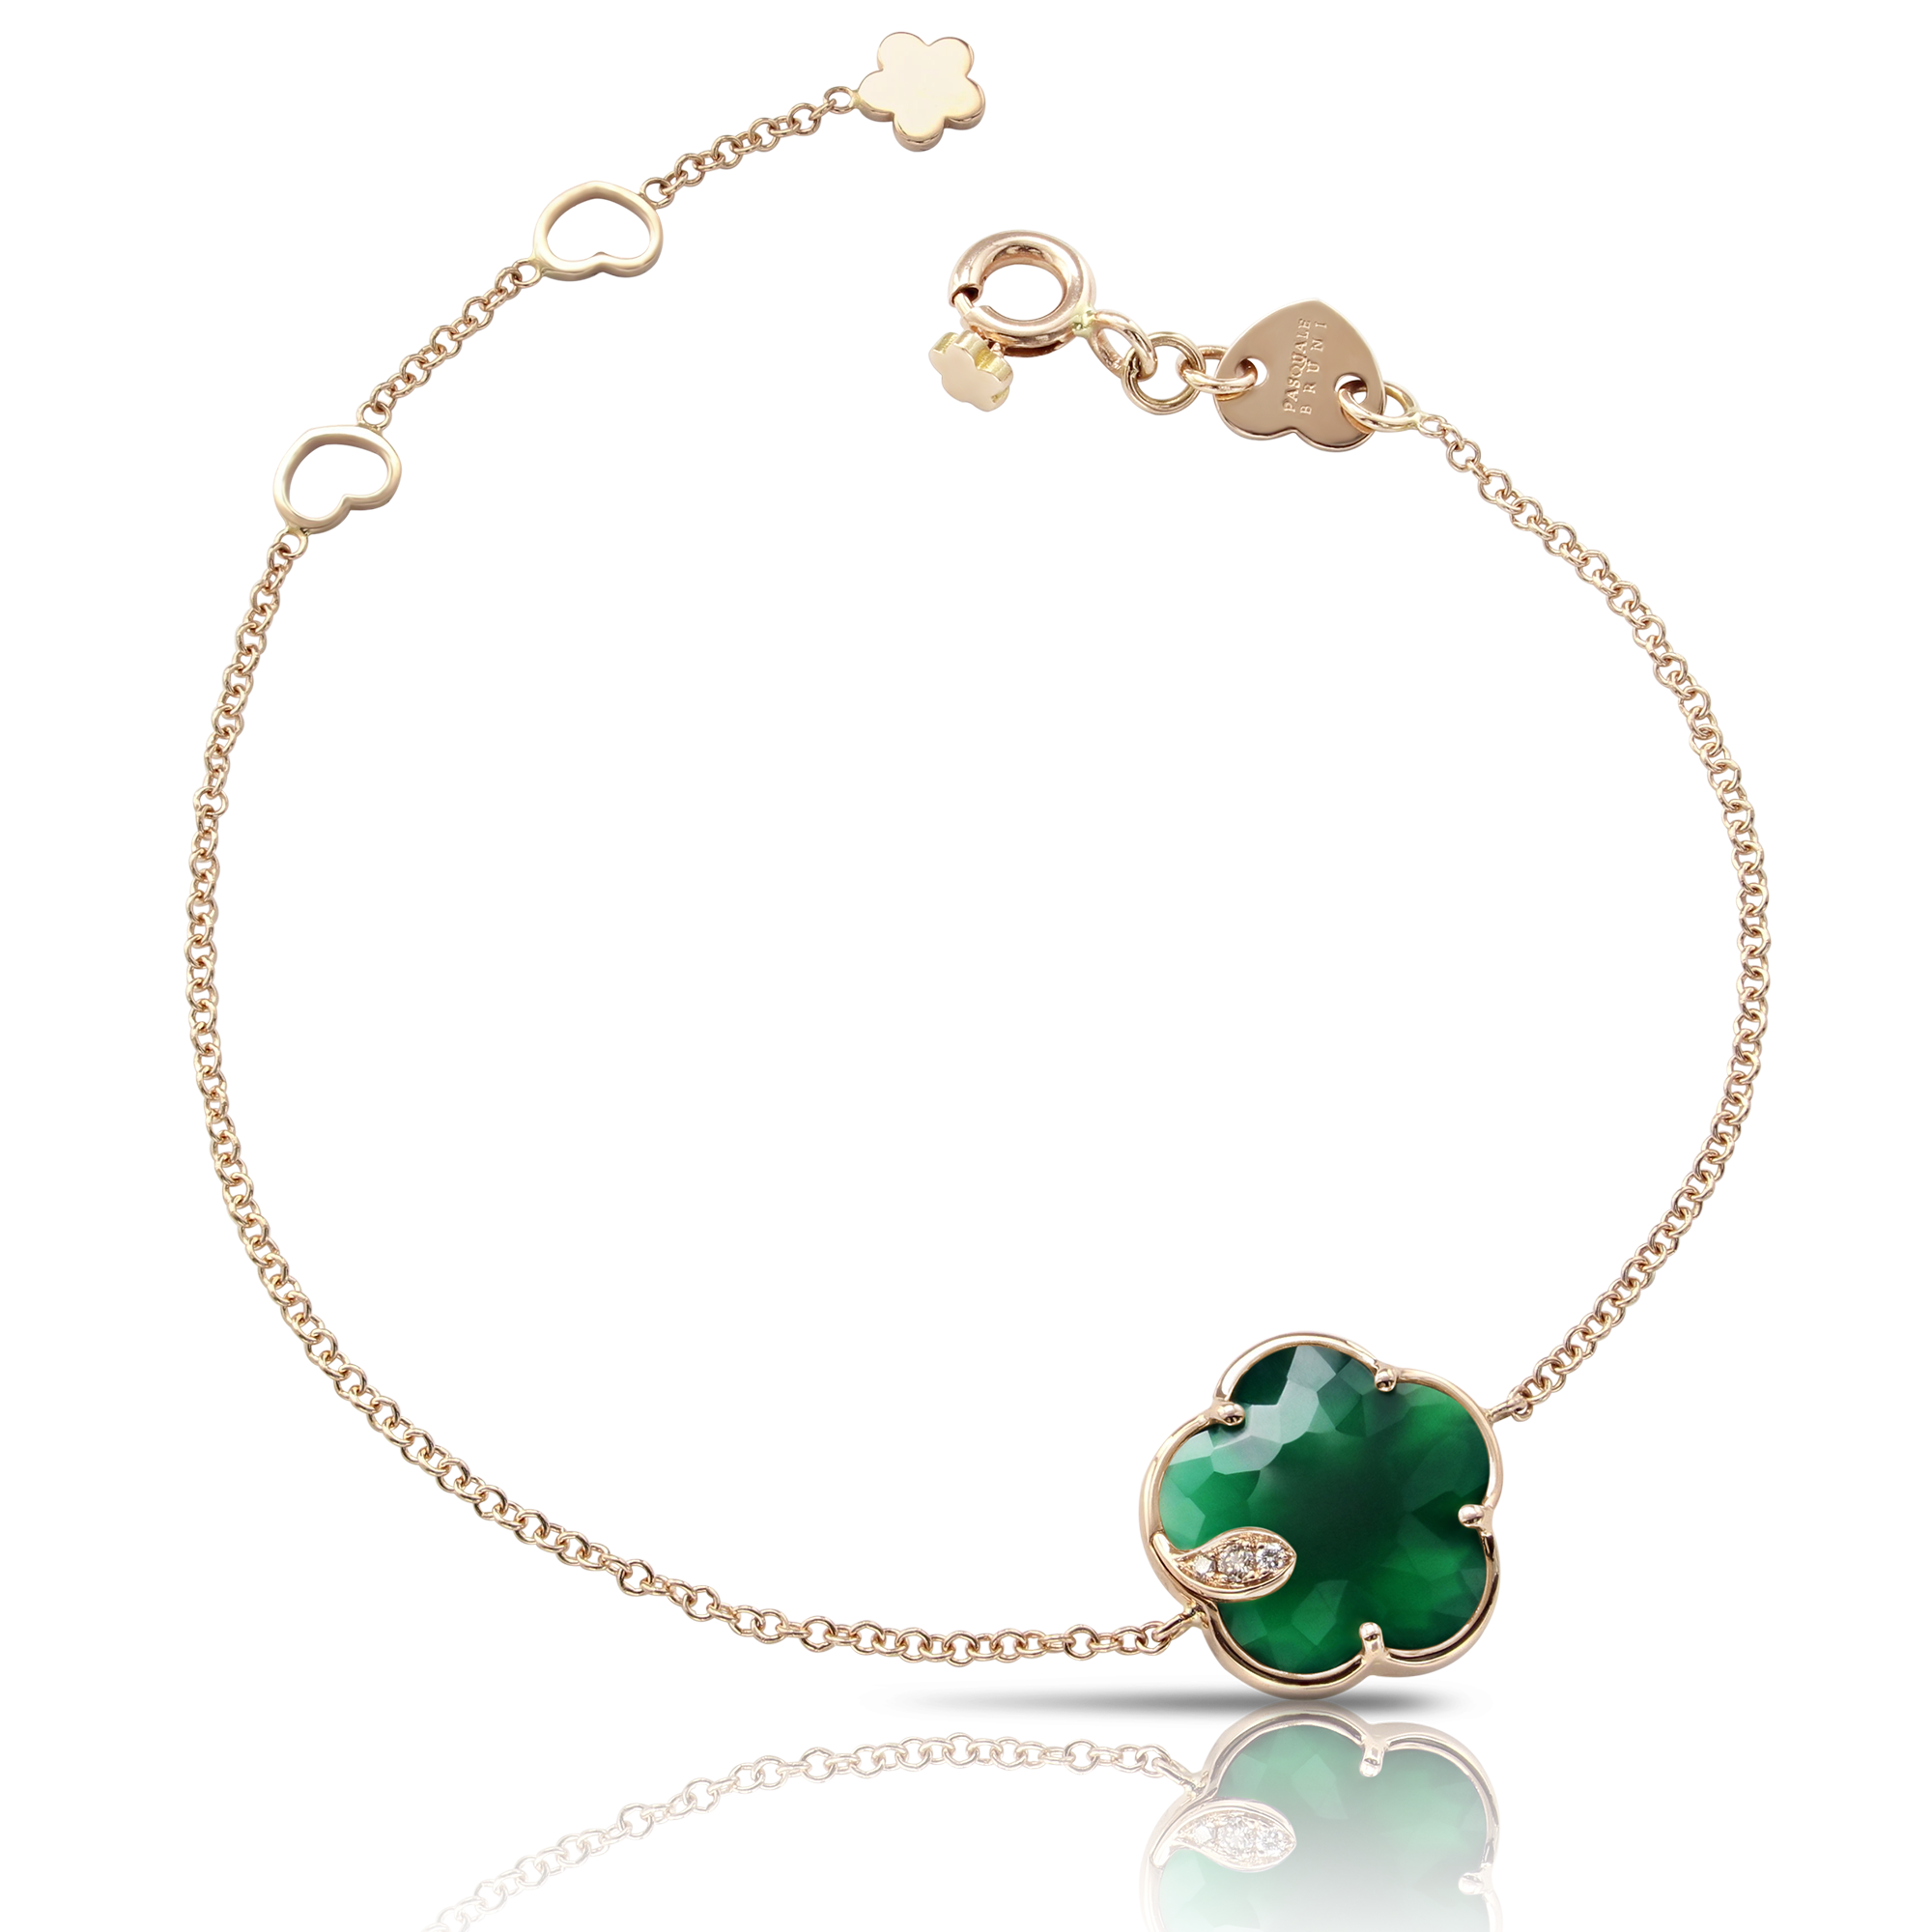 18k Rose Gold Petit Joli Bracelet with Green Agate, White and Champagne Diamonds